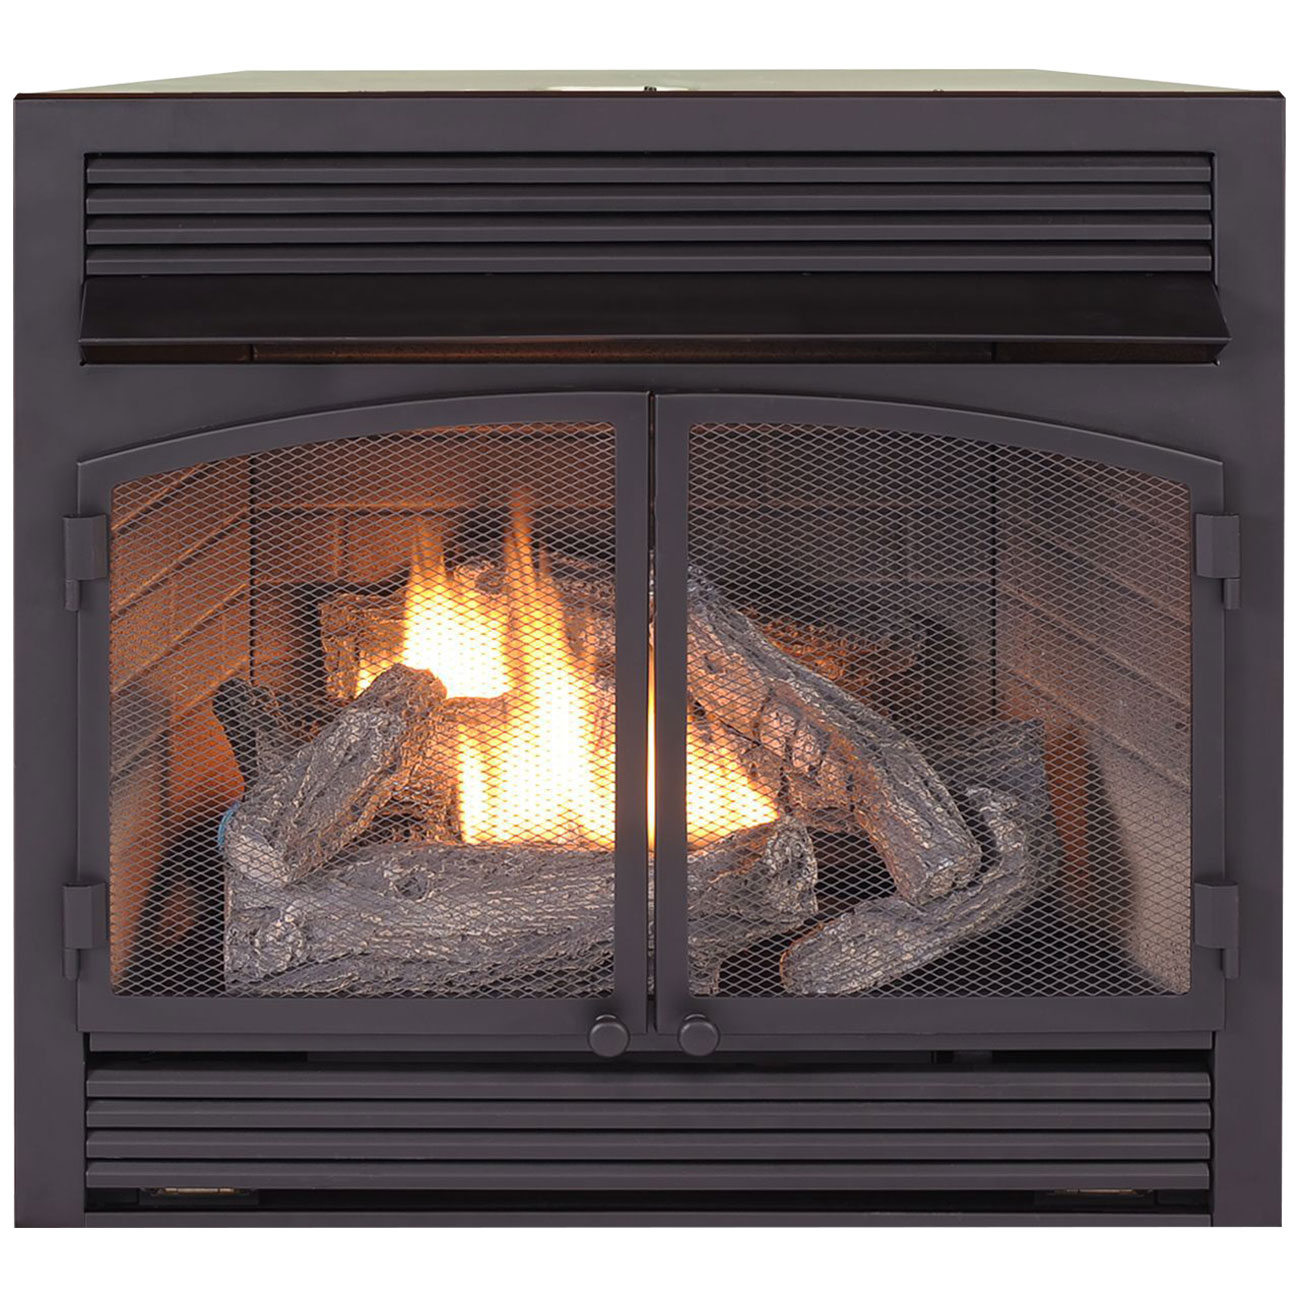 Dual Fuel Fireplace Insert Zero Clearance